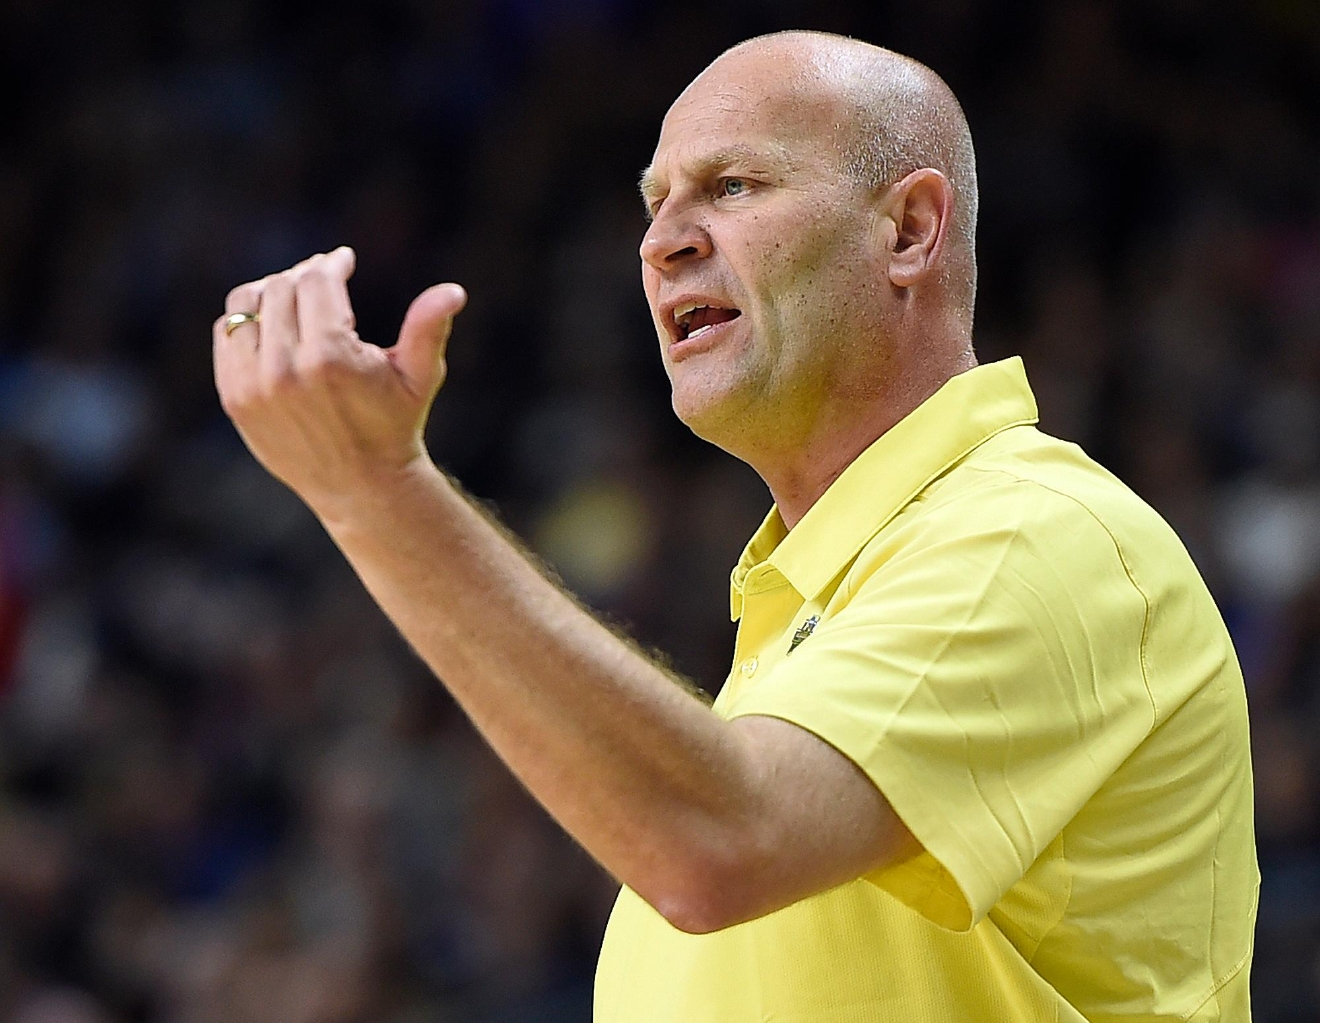 Oregon head coach Kelly Graves gives his team instructions during the first half of a regional final game between Oregon and Connecticut in the NCAA women's college basketball tournament, Monday, March 27, 2017, in Bridgeport, Conn. (AP Photo/Jessica Hill)